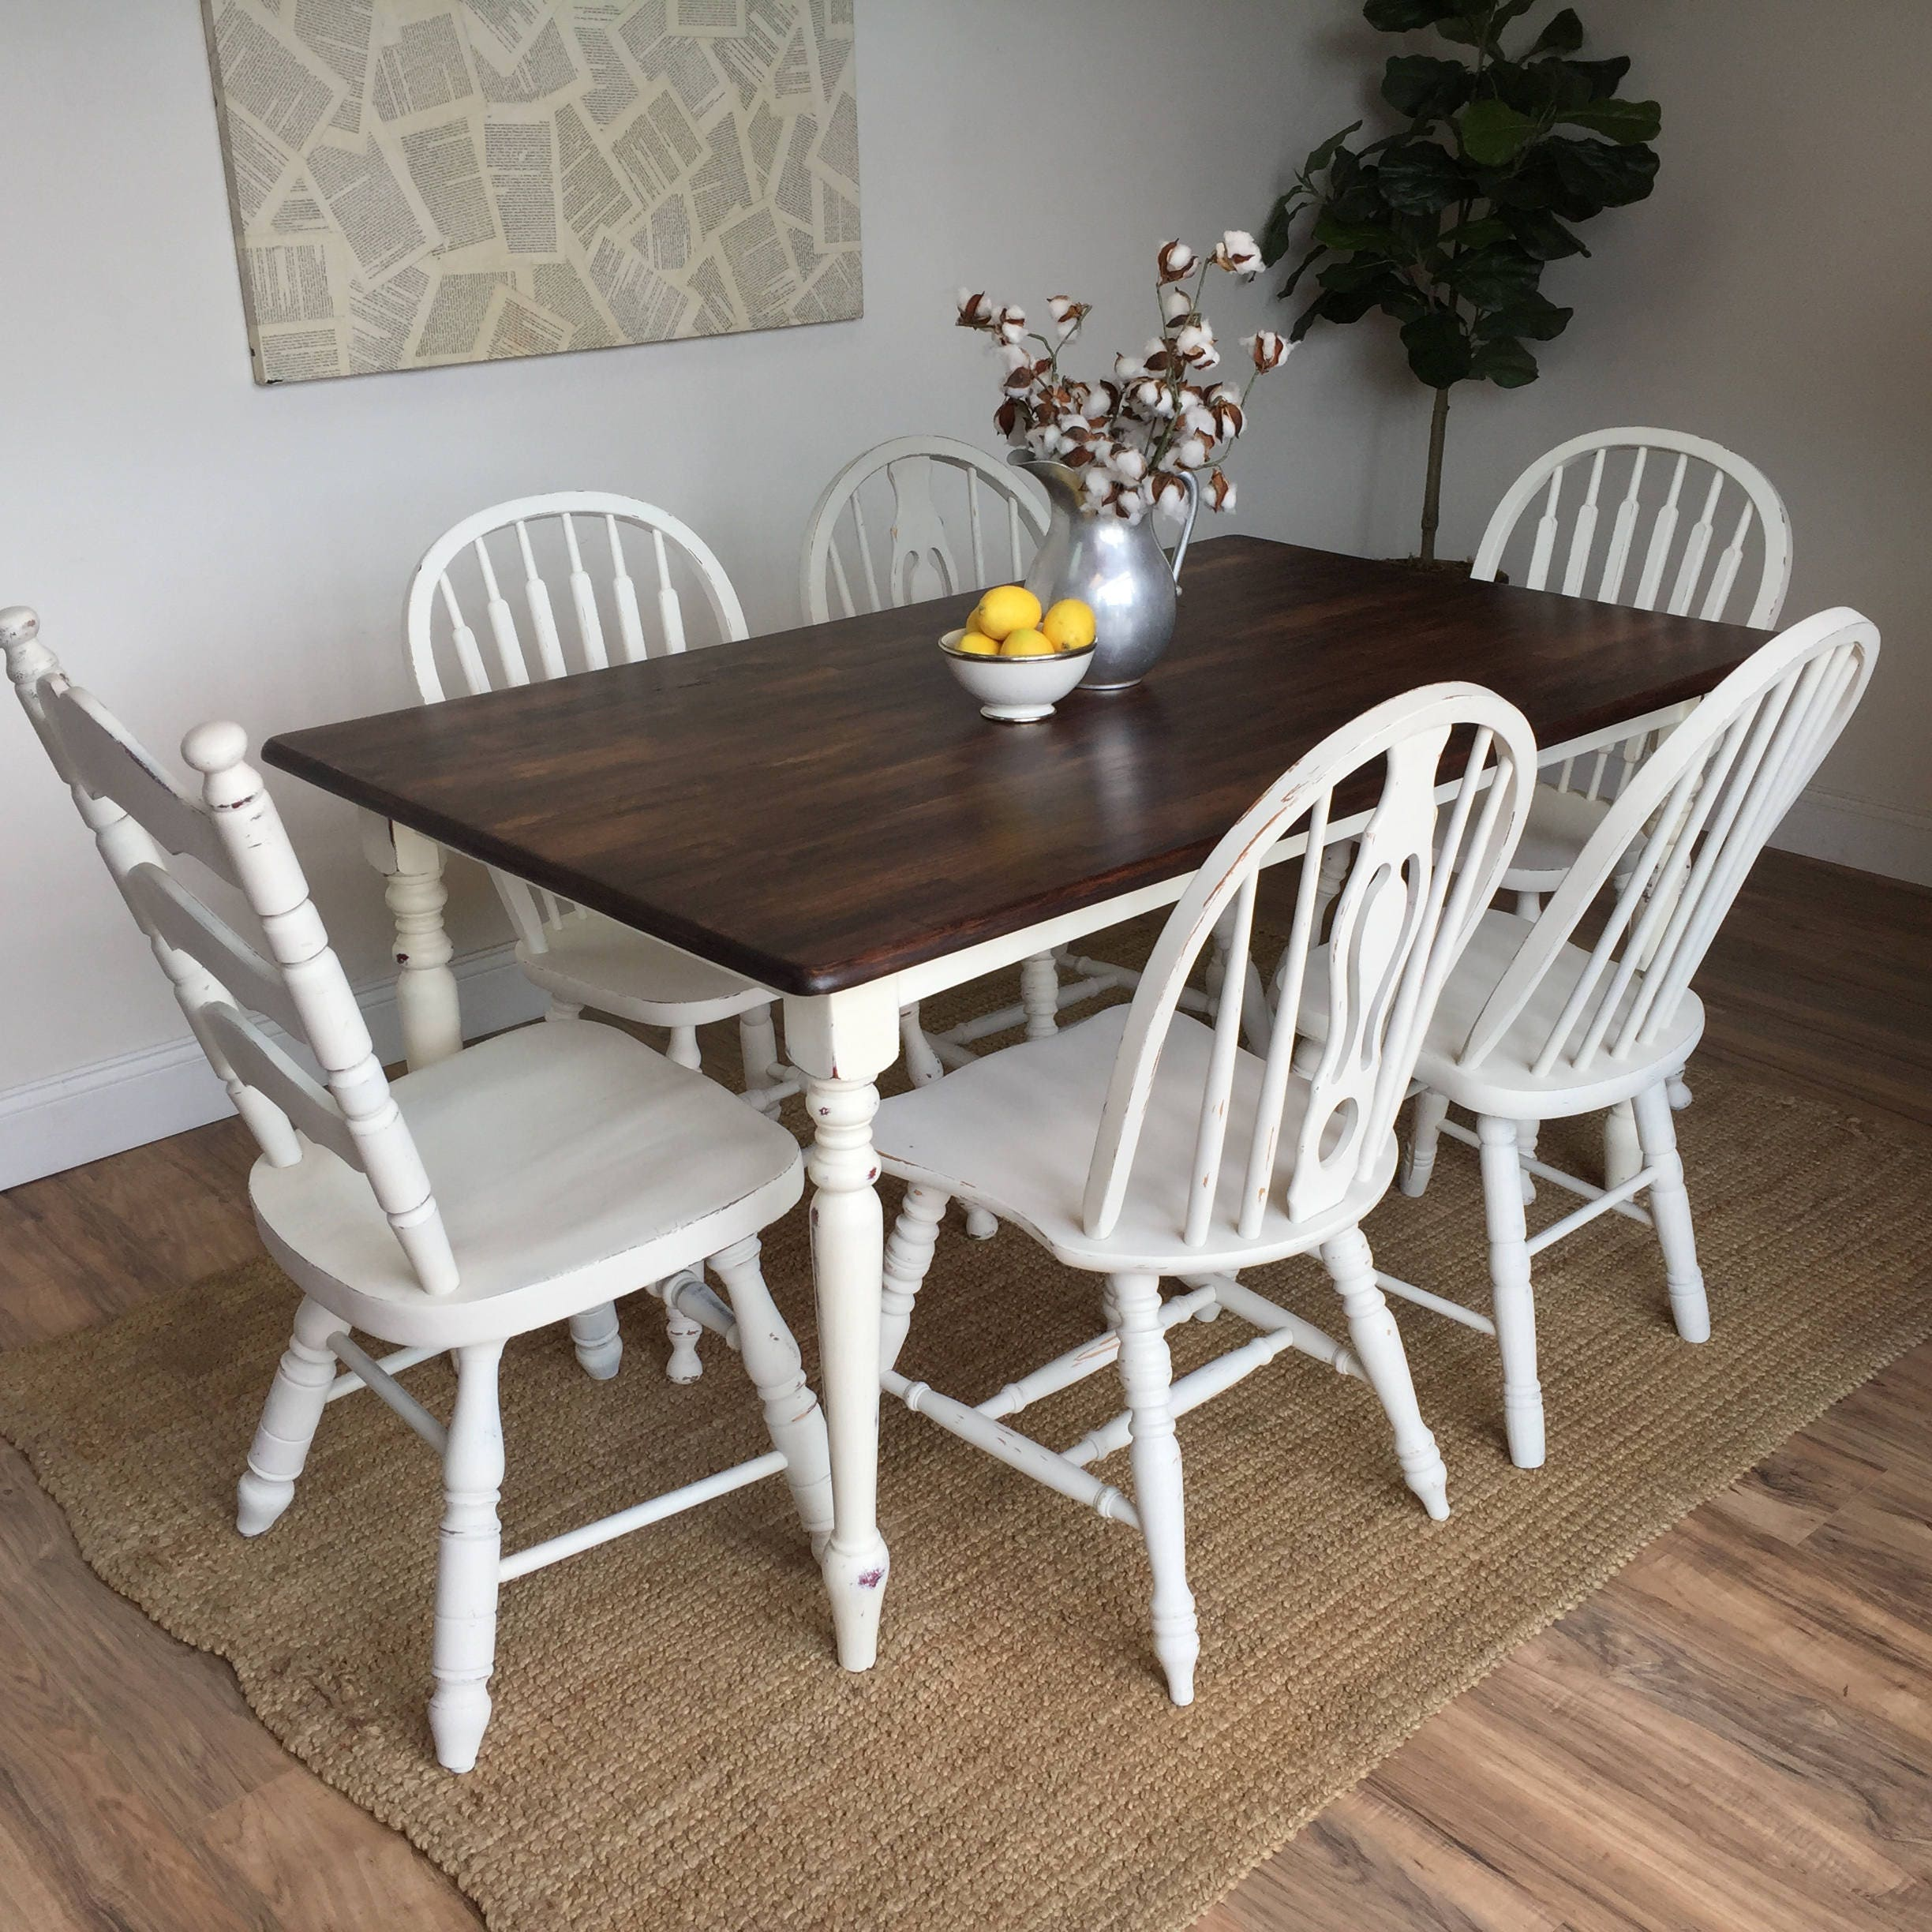 Distressed kitchen table small white dining table for Distressed white dining table